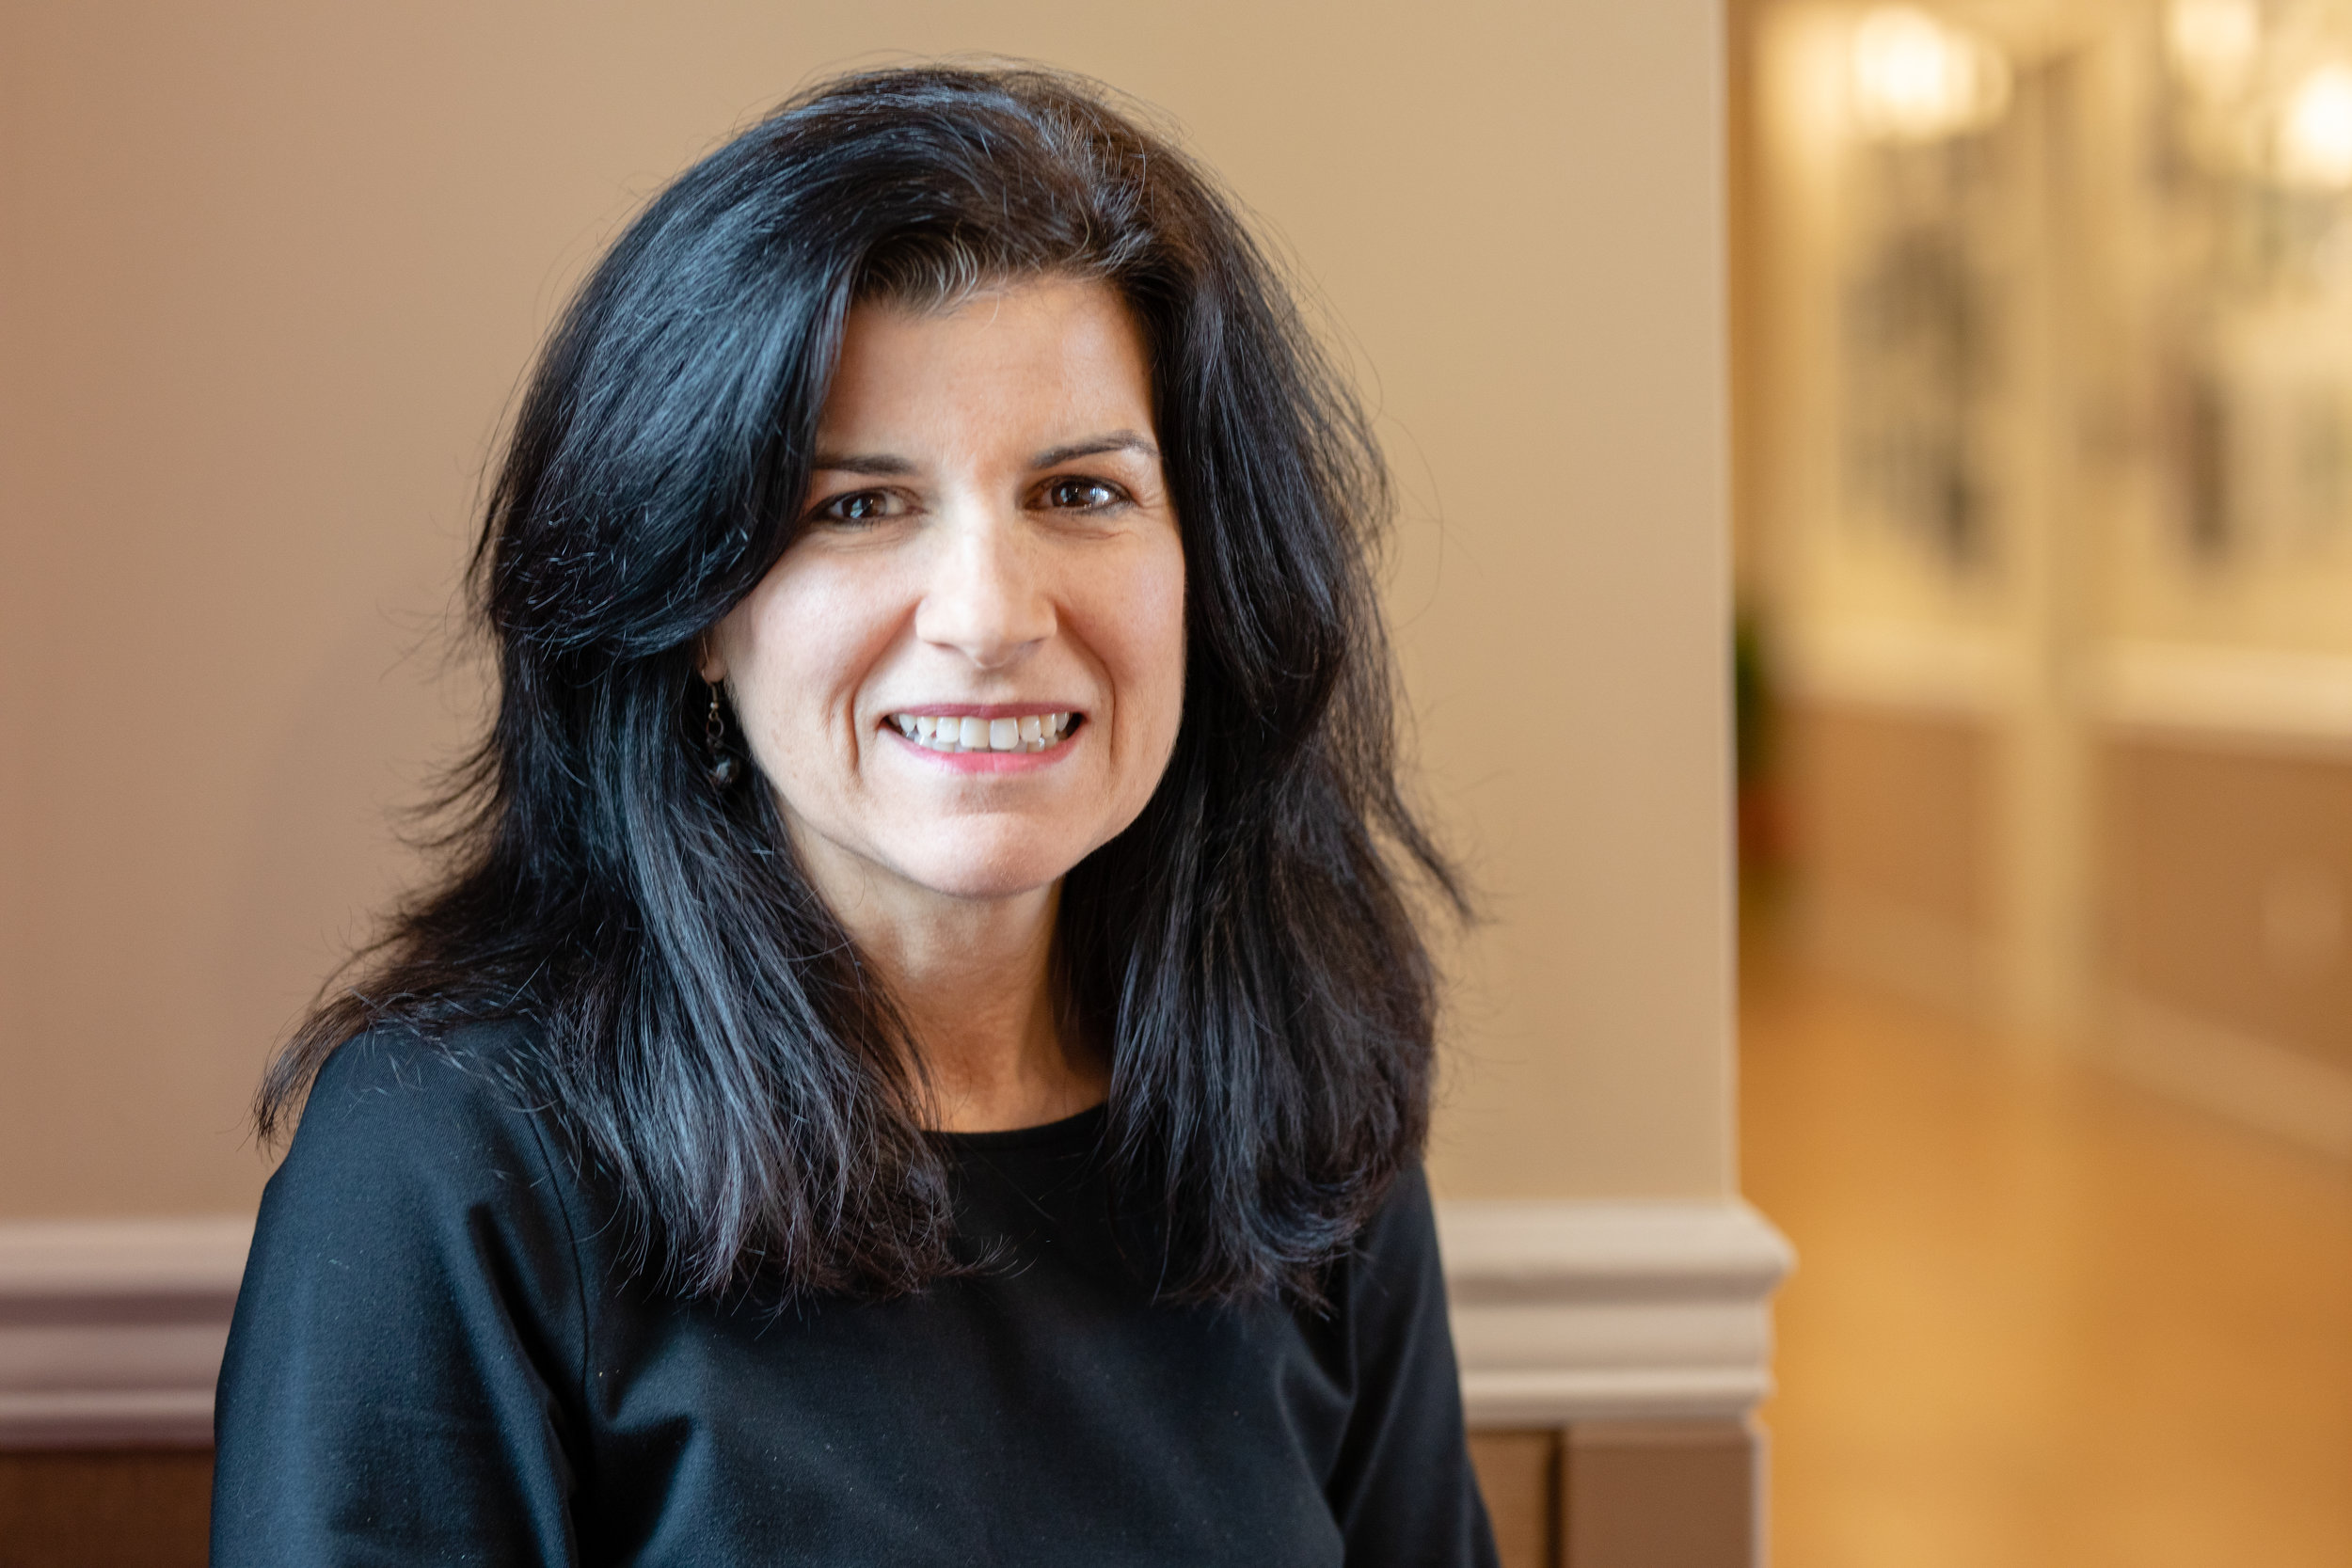 """""""The Confident You"""" - with Miriam Buono, Oakcrest SchoolMiriam has over 30 years of experience in marketing, management, and sales. Join this lunch session if you want to learn more about working and speaking with confidence!"""